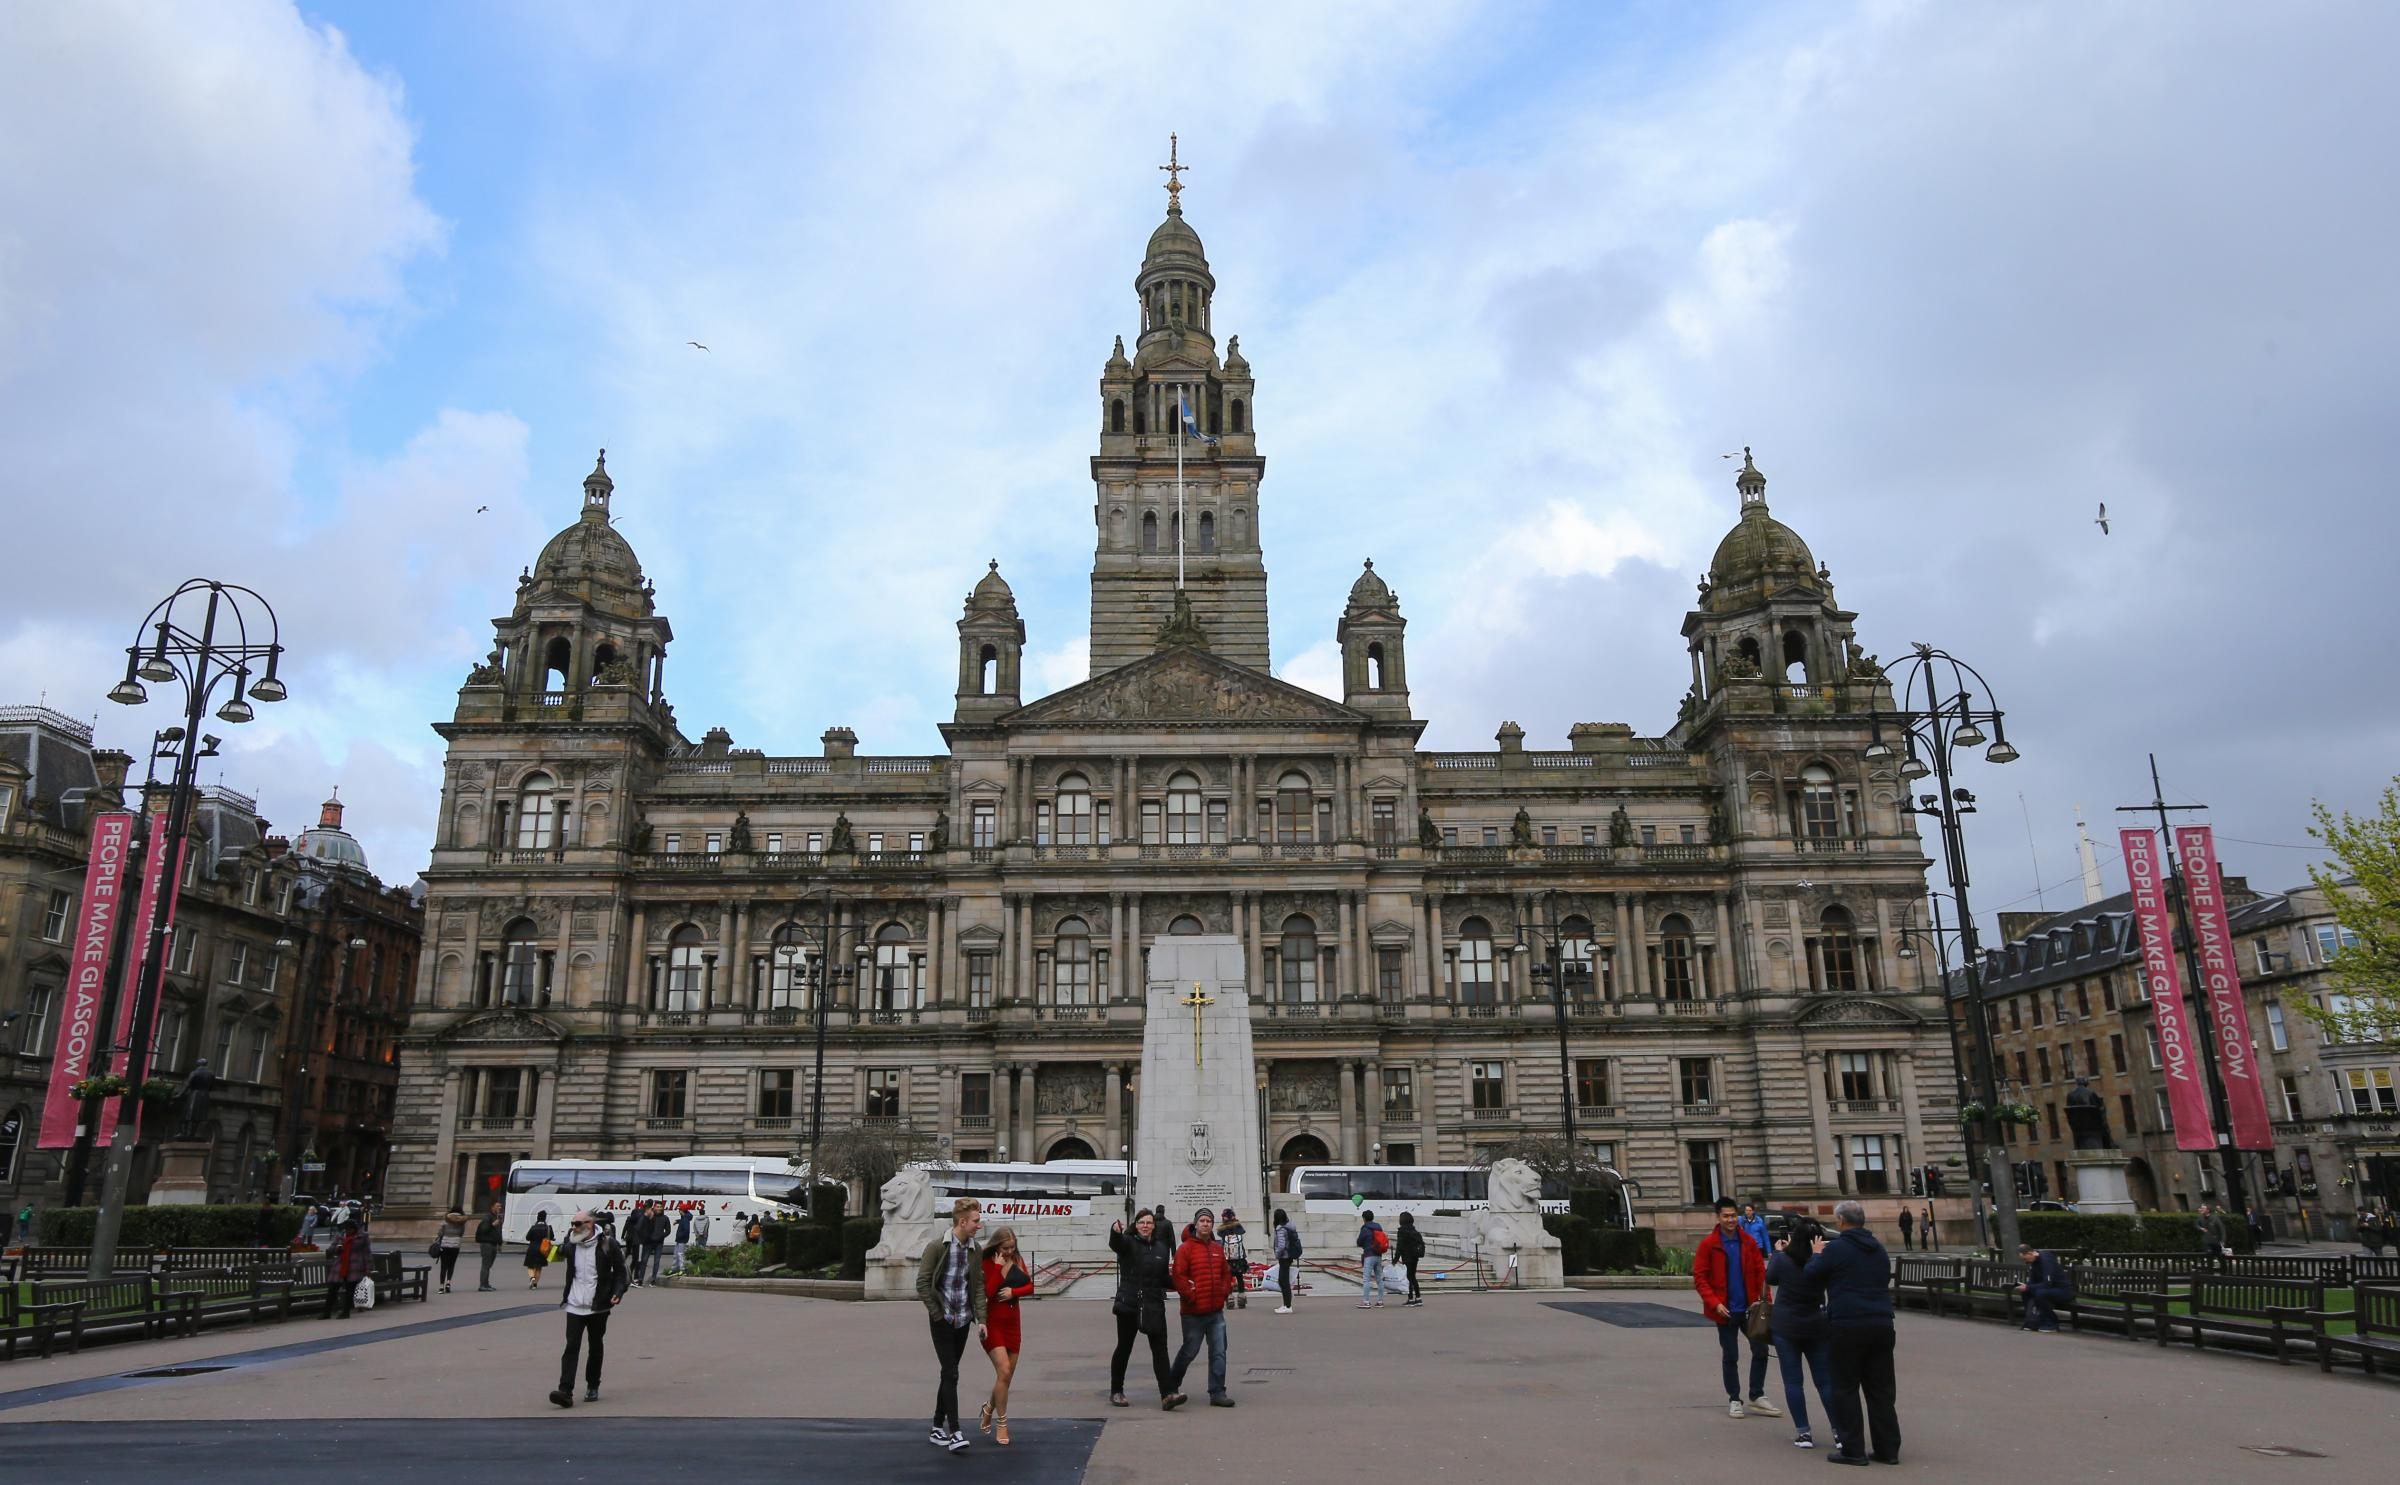 Scotland's biggest local government pension fund facing climate call